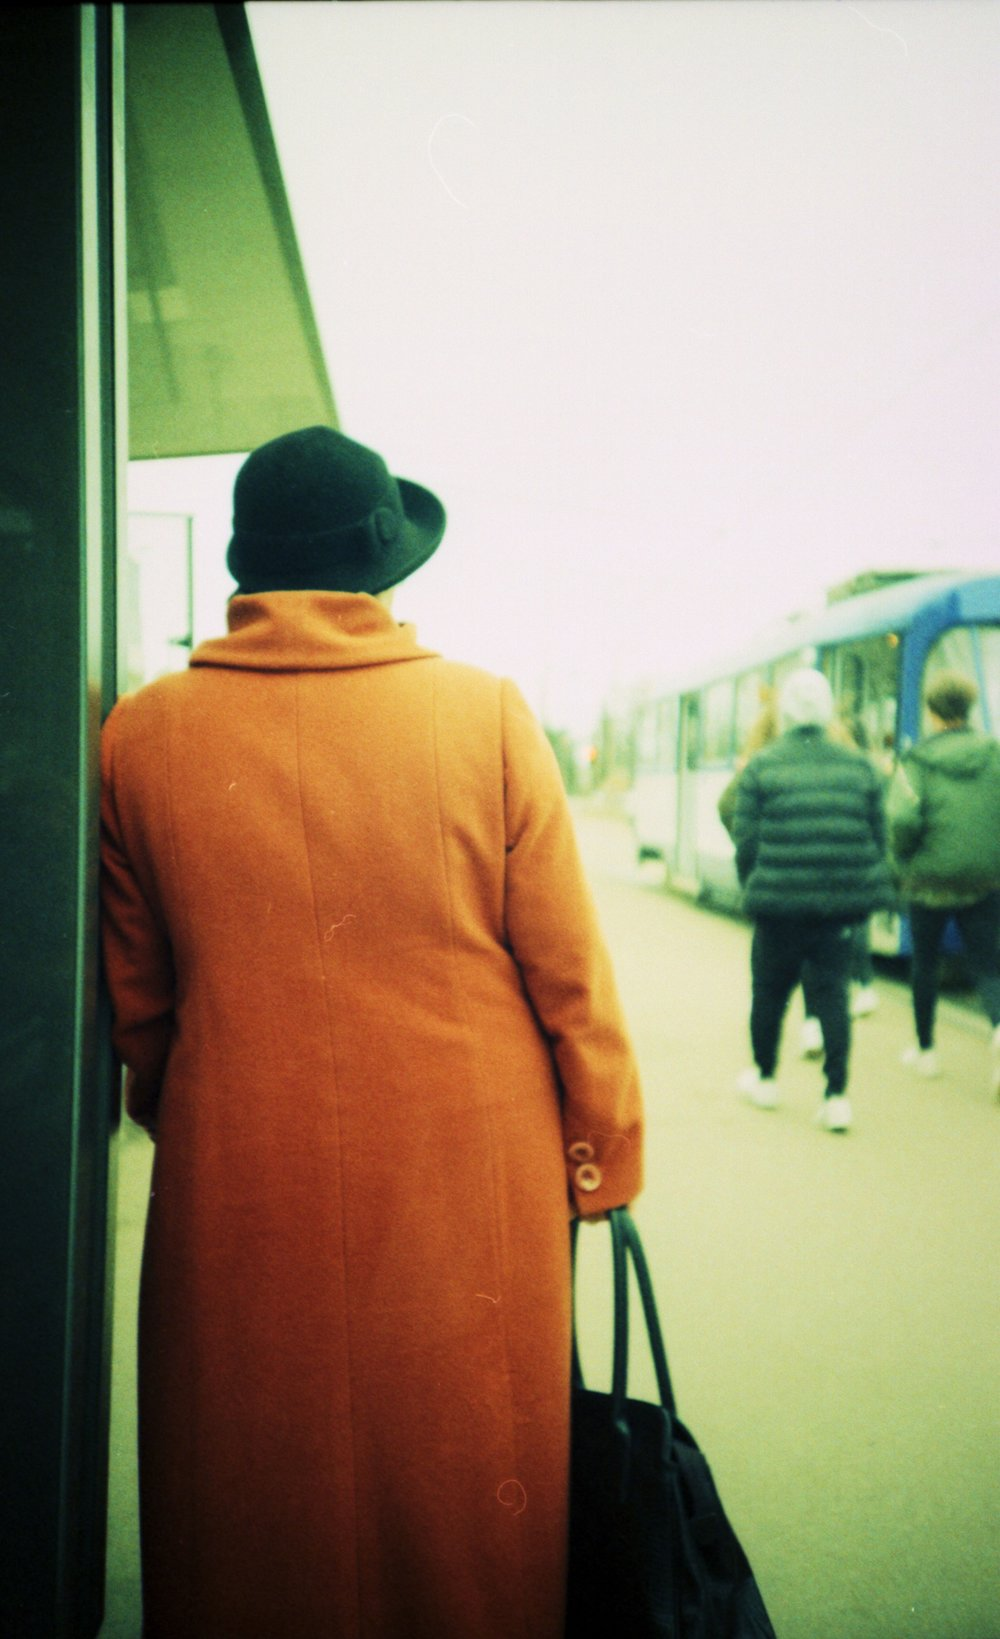 Lady in Orange | Lomo LCA | Velvia 50 in C41 | Patrice Baunov